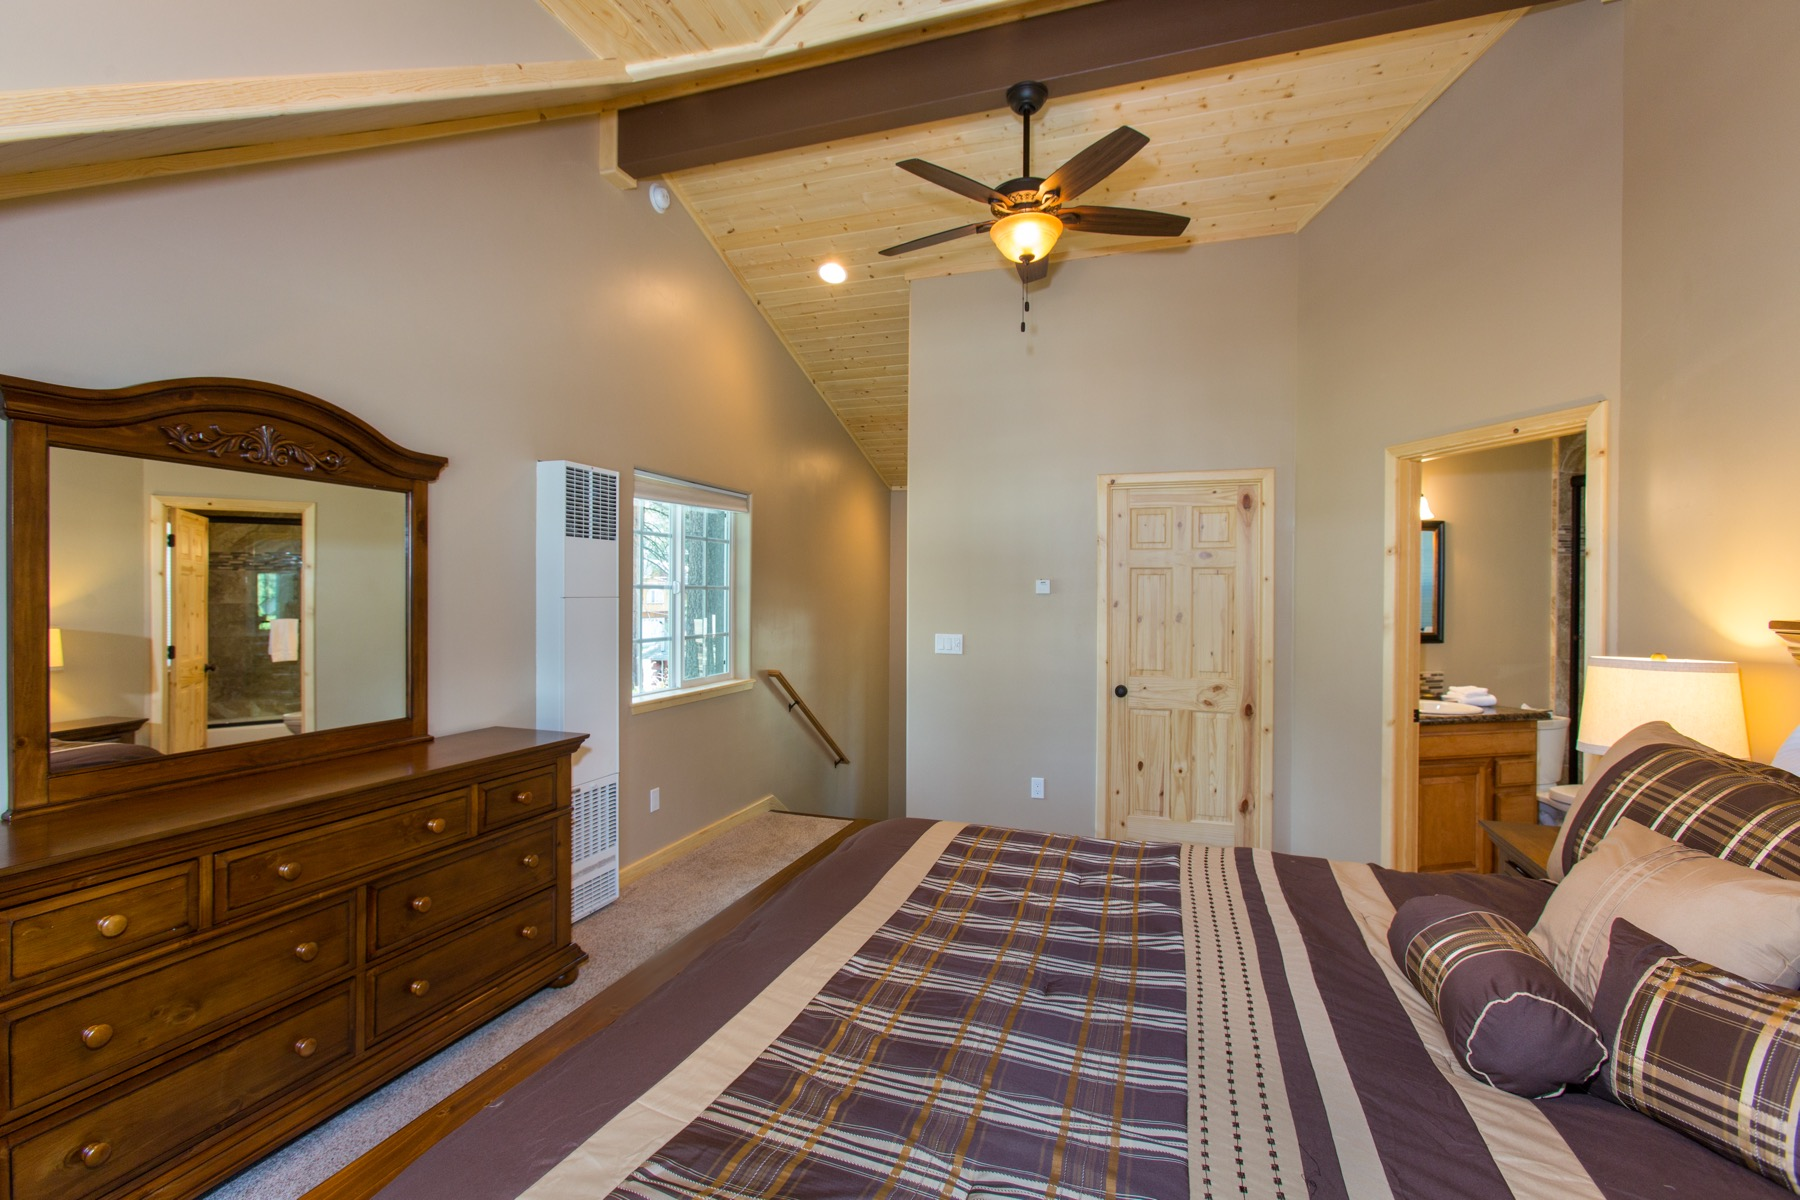 Upstairs master suite available for an added nightly fee of $50.